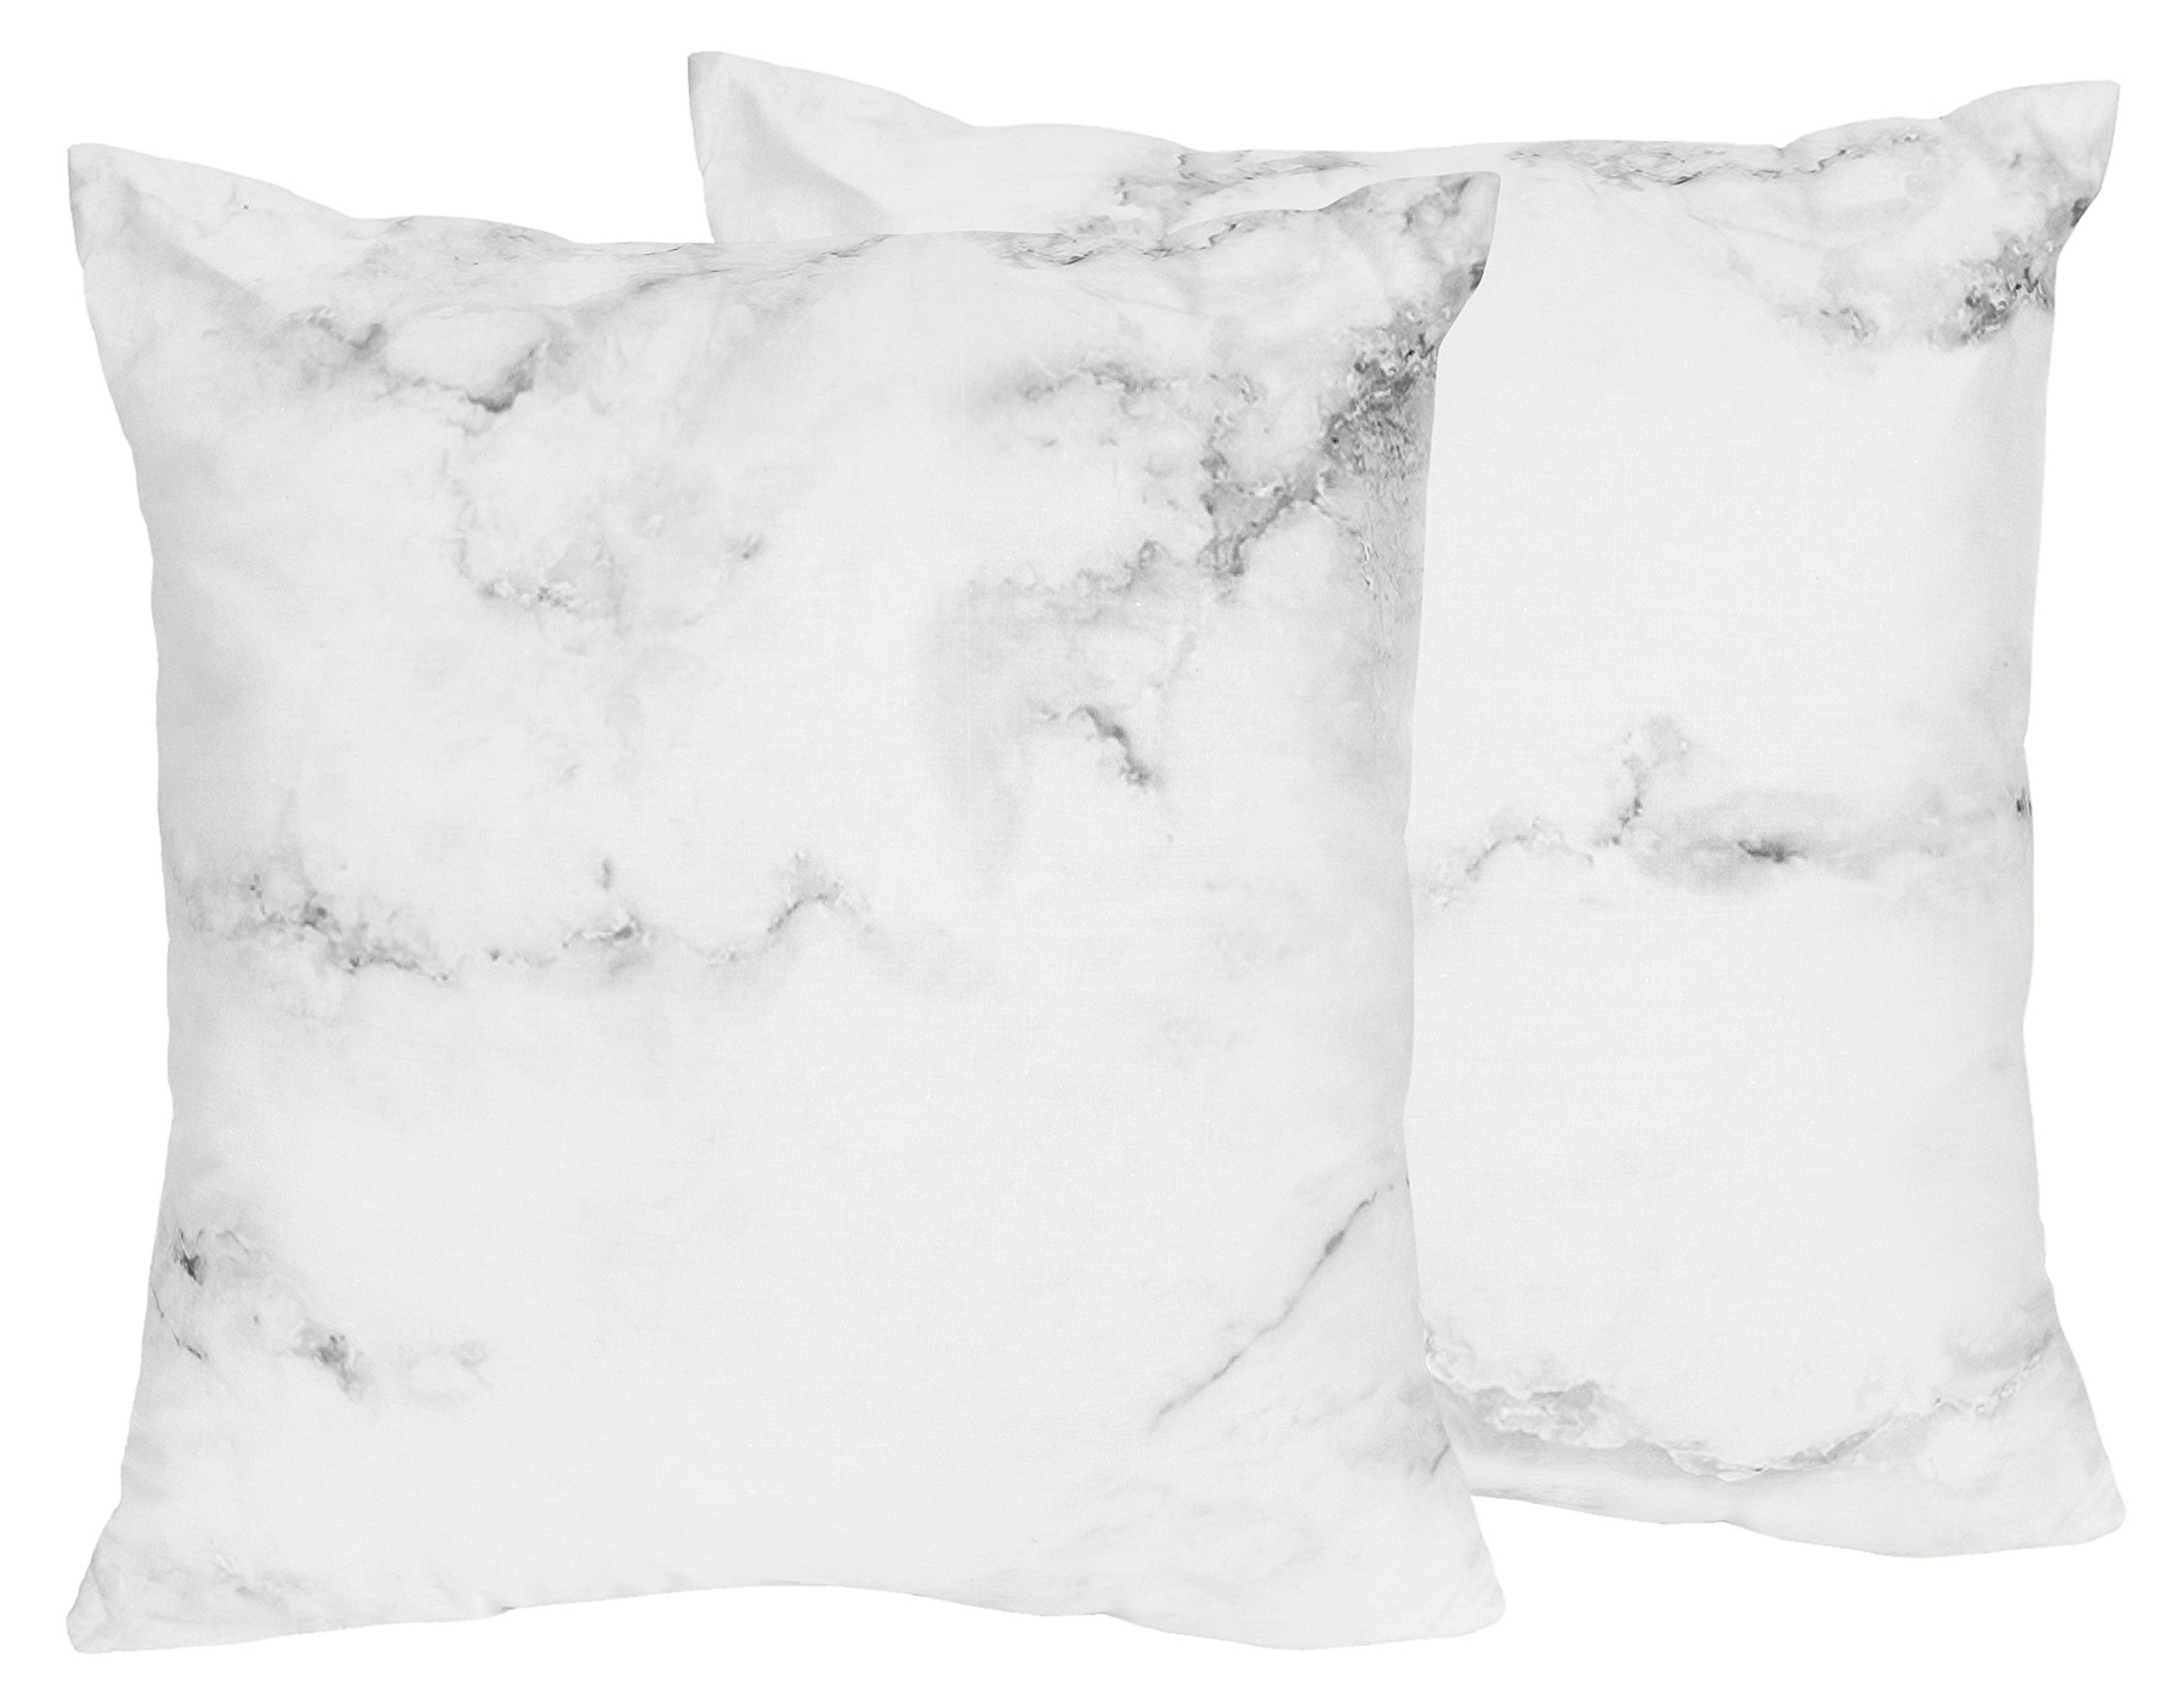 Sweet Jojo Designs 2-Piece Modern Grey, Black and White Marble Print Decorative Accent Throw Pillows